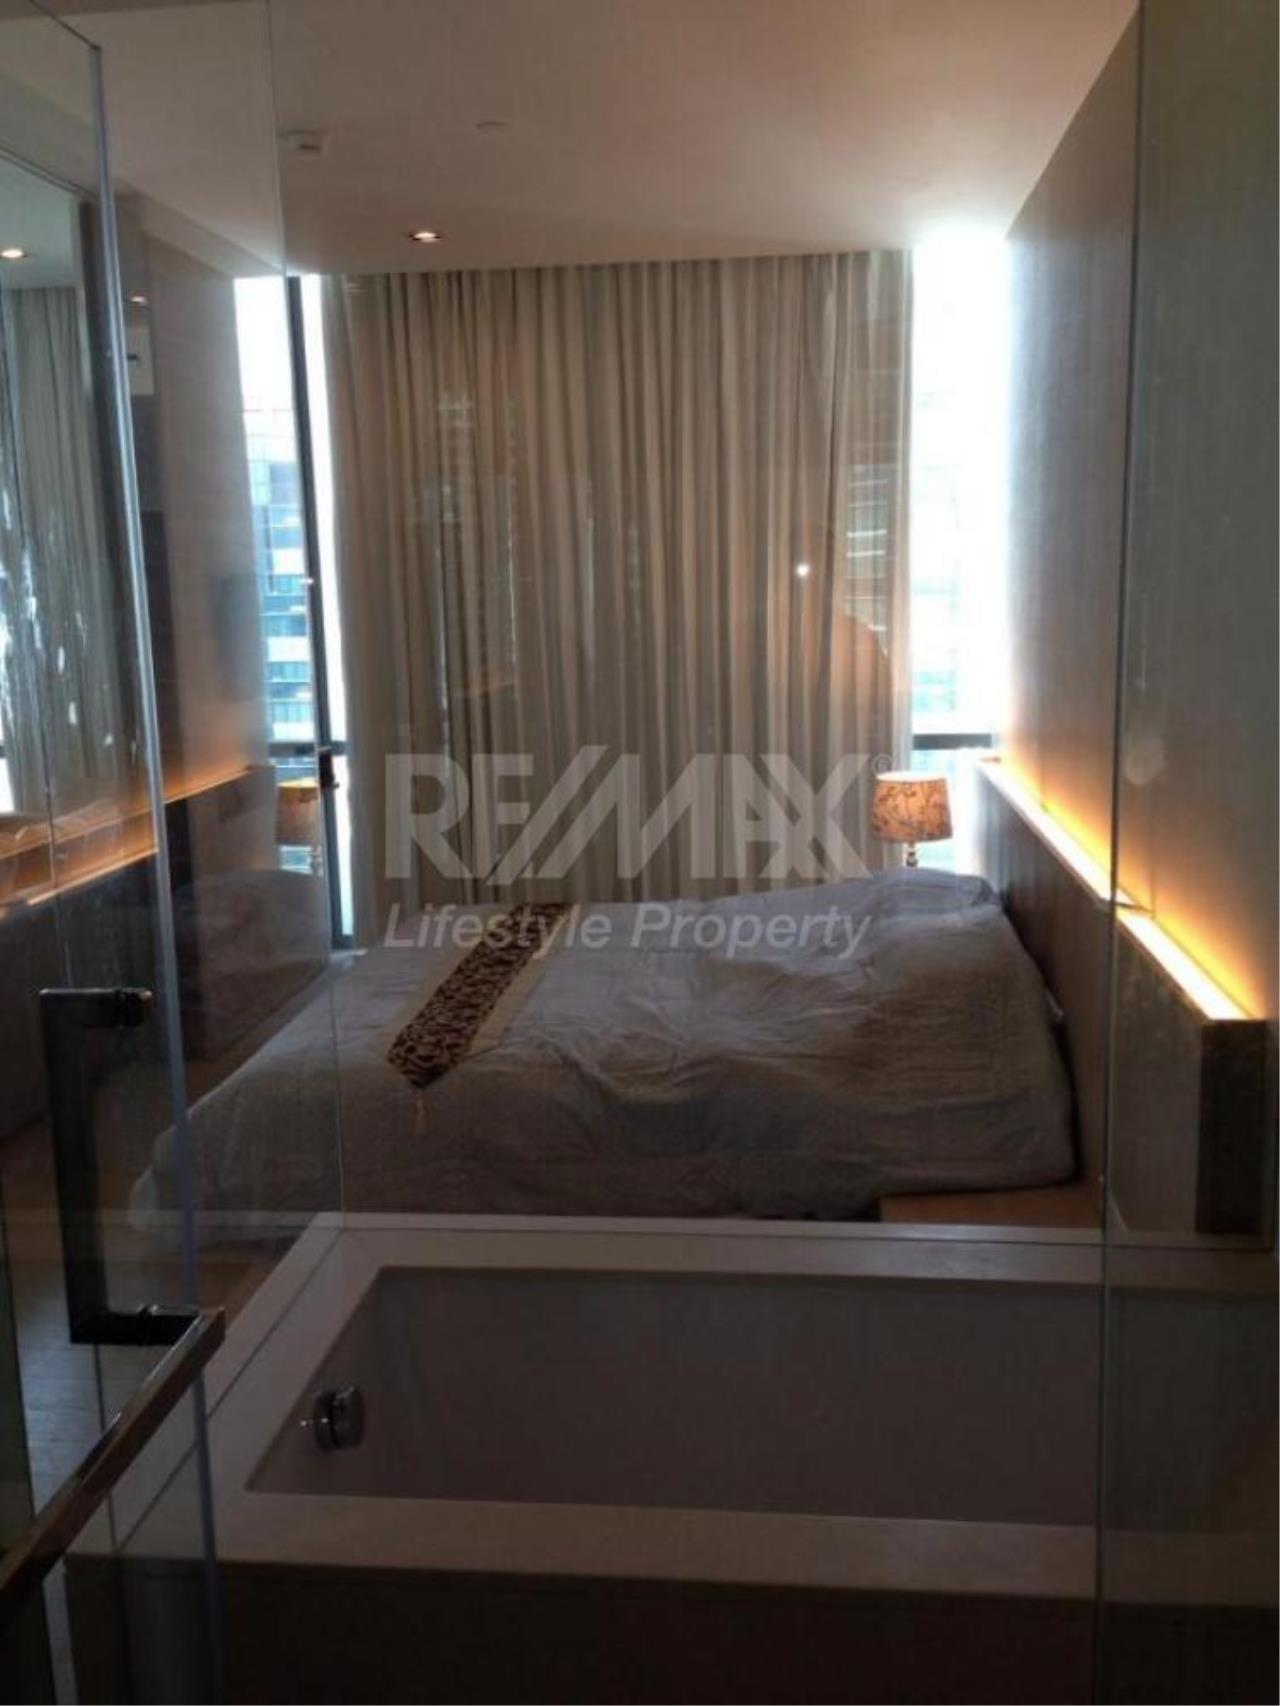 RE/MAX LifeStyle Property Agency's The Room Sukhumvit 21 2